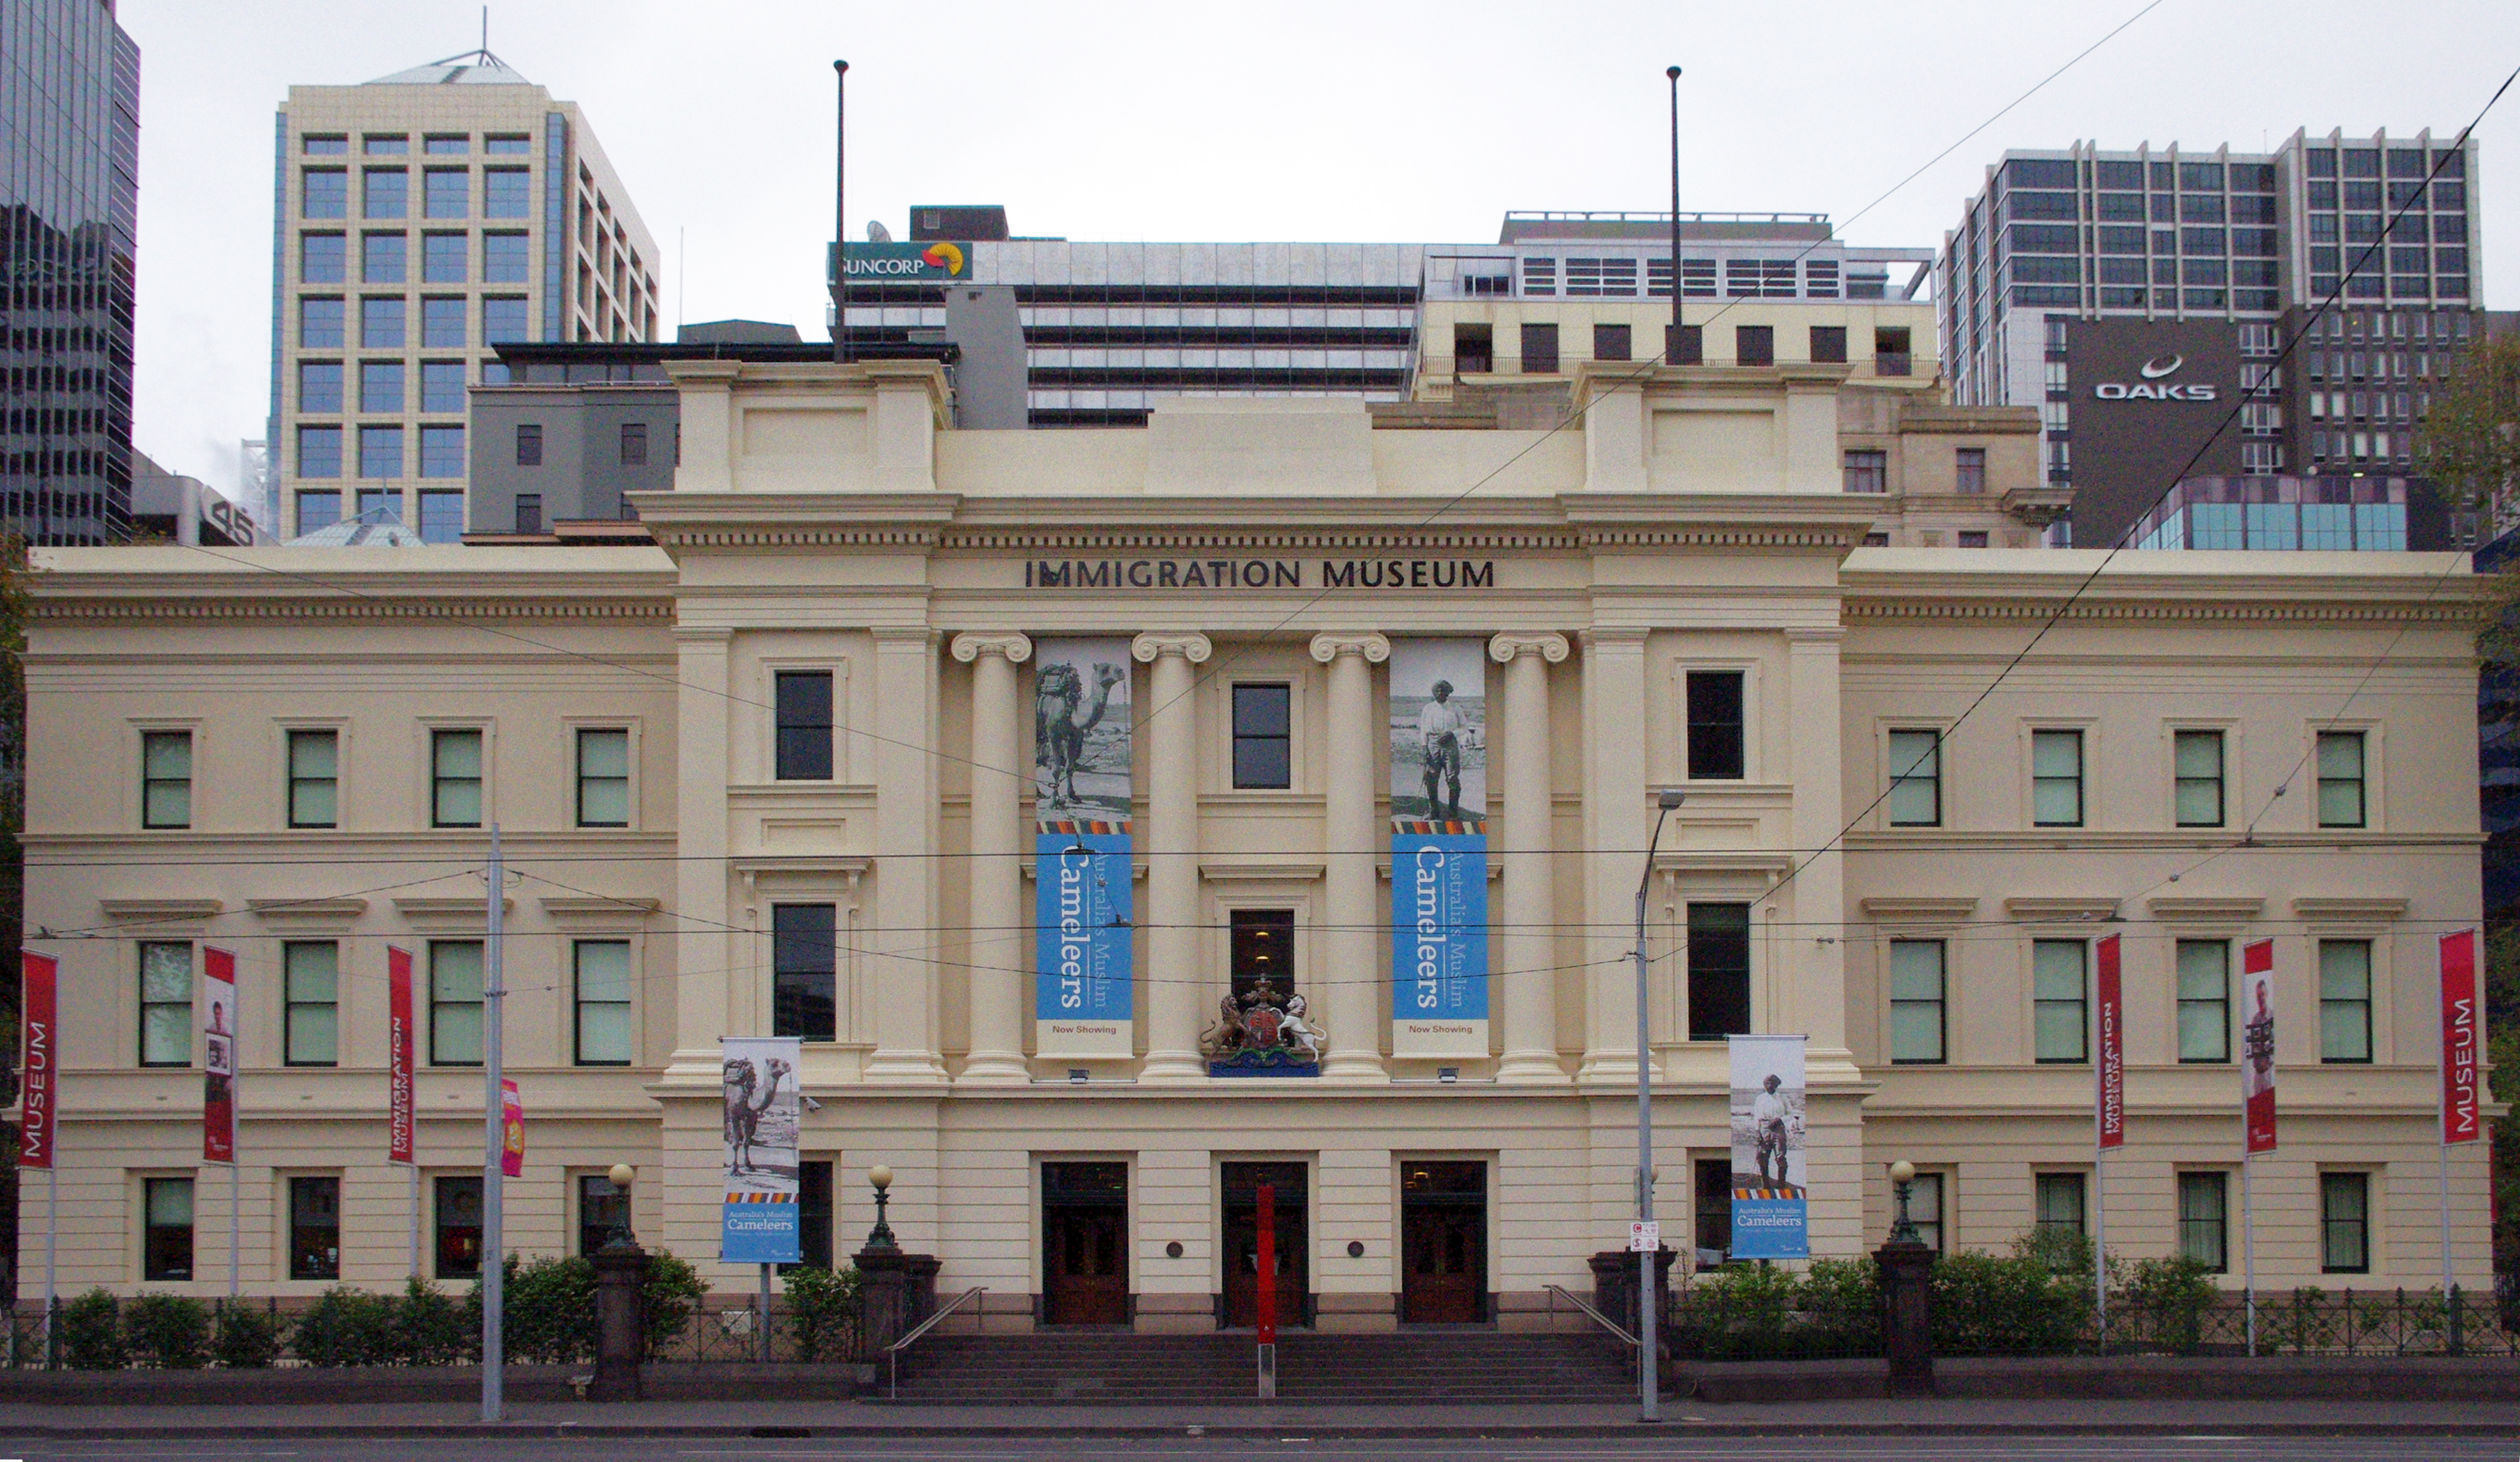 File:Old Customs House Melbourne.jpg - Wikimedia Commons